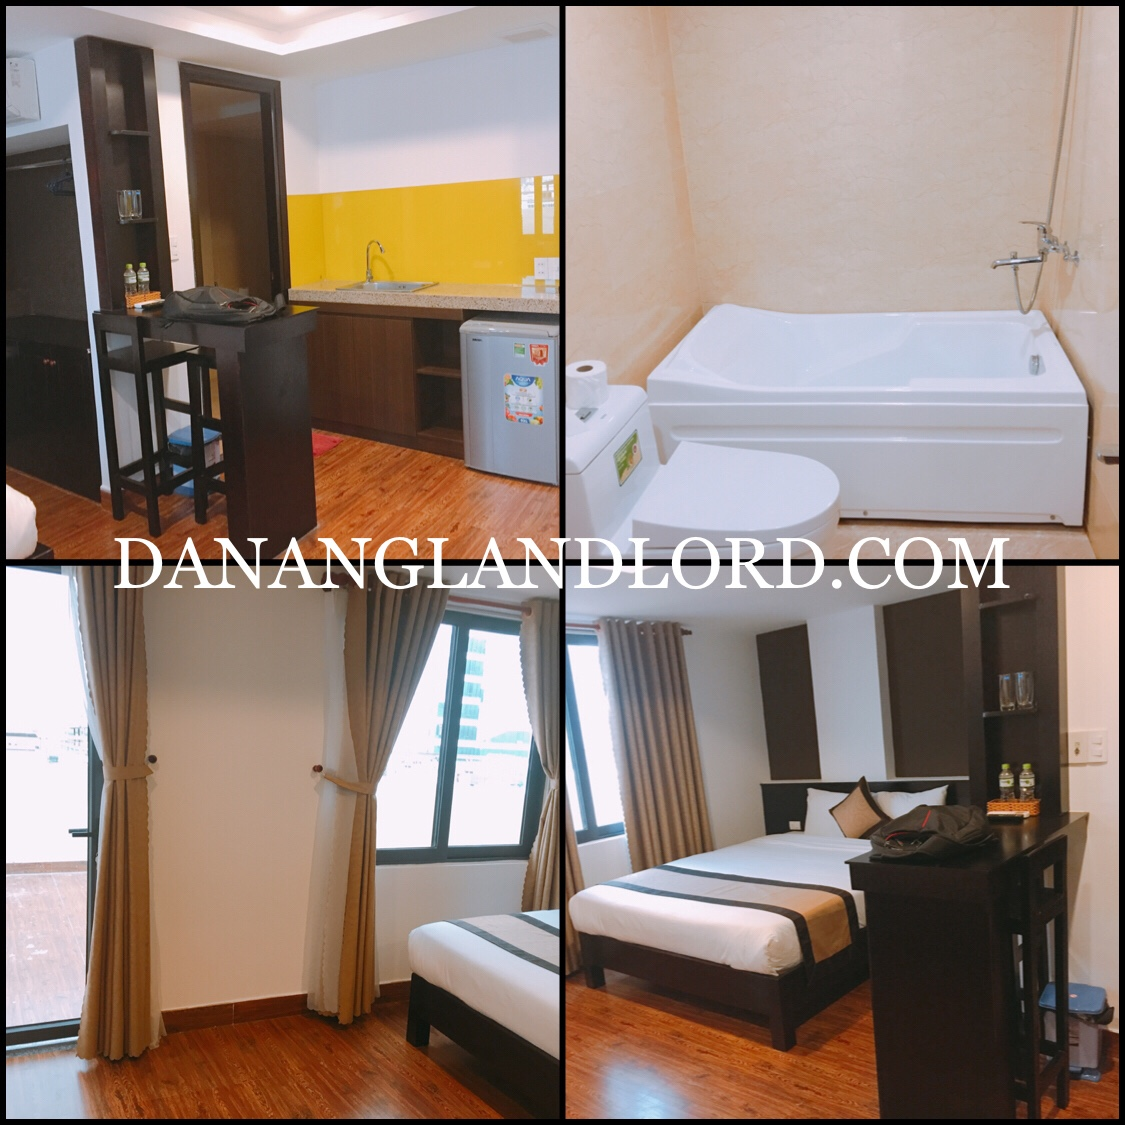 Studio apartment for rent in An Thuong area, big windows